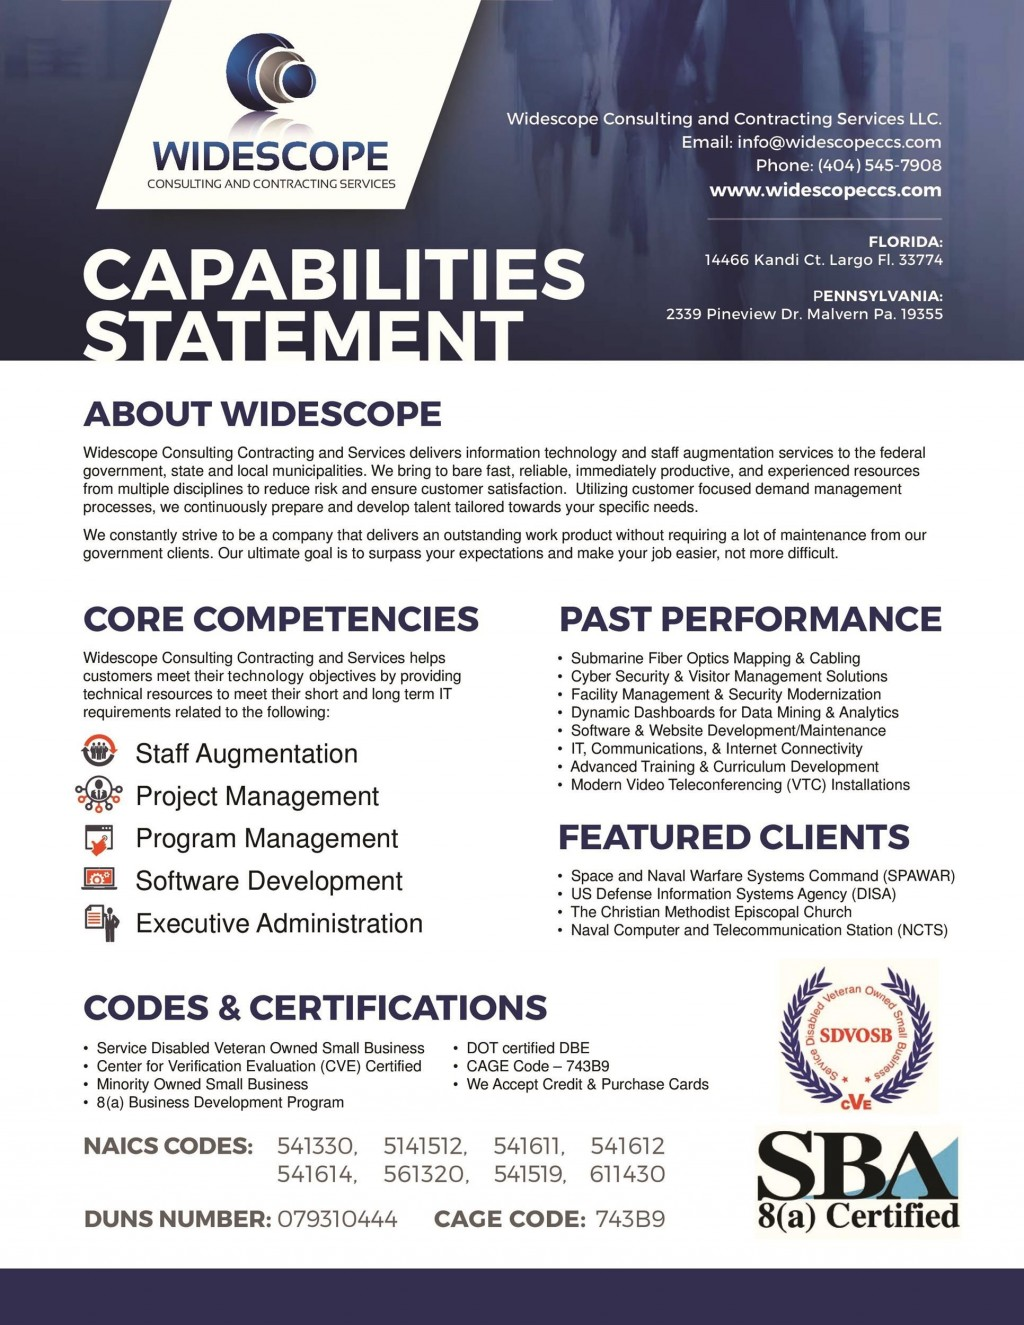 008 Surprising Capability Statement Template Free Picture  Word Editable DesignLarge